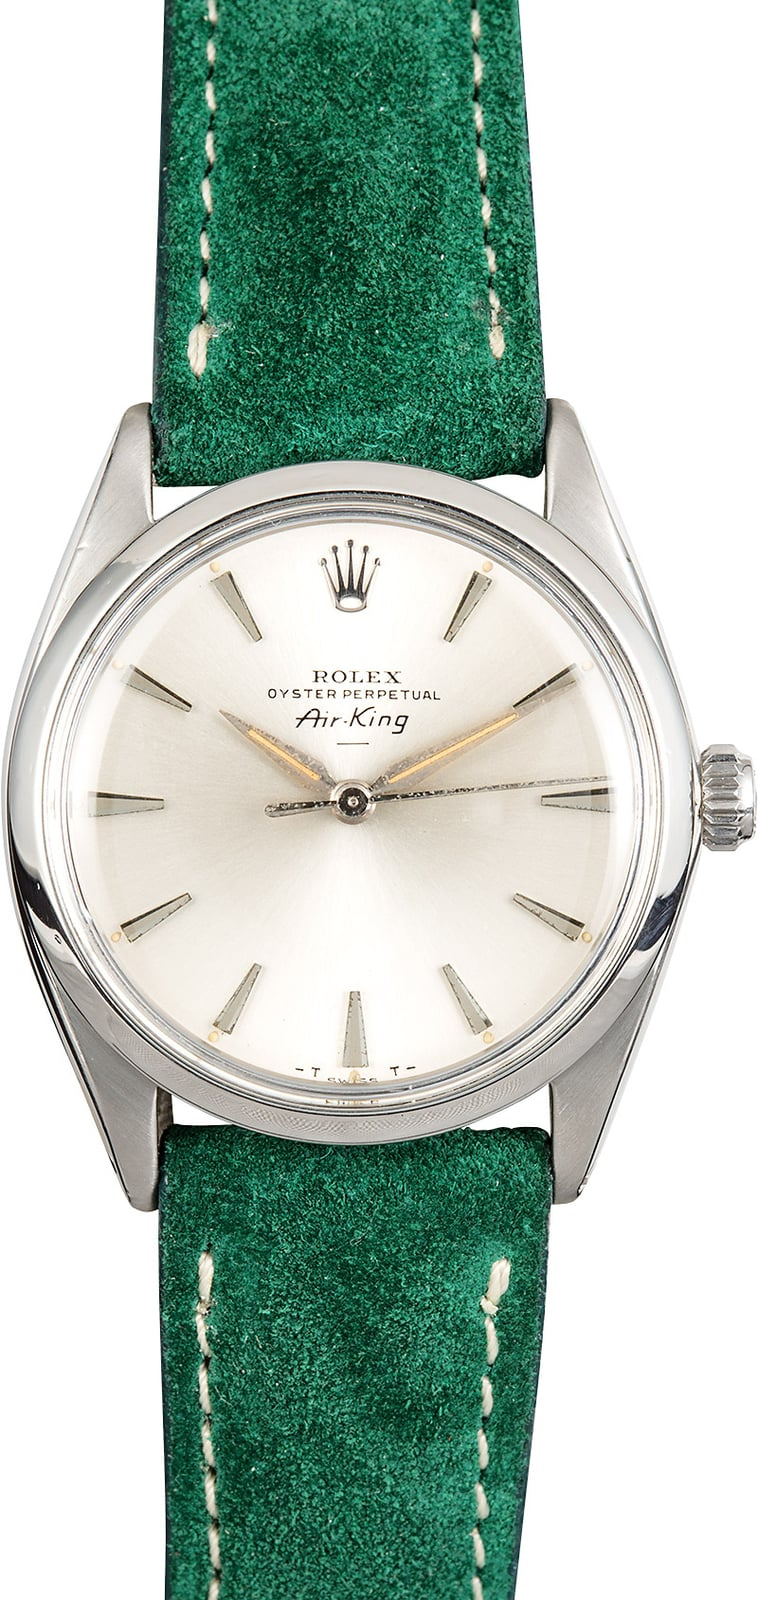 Rolex air king 5500 vintage watch for Rolex air king